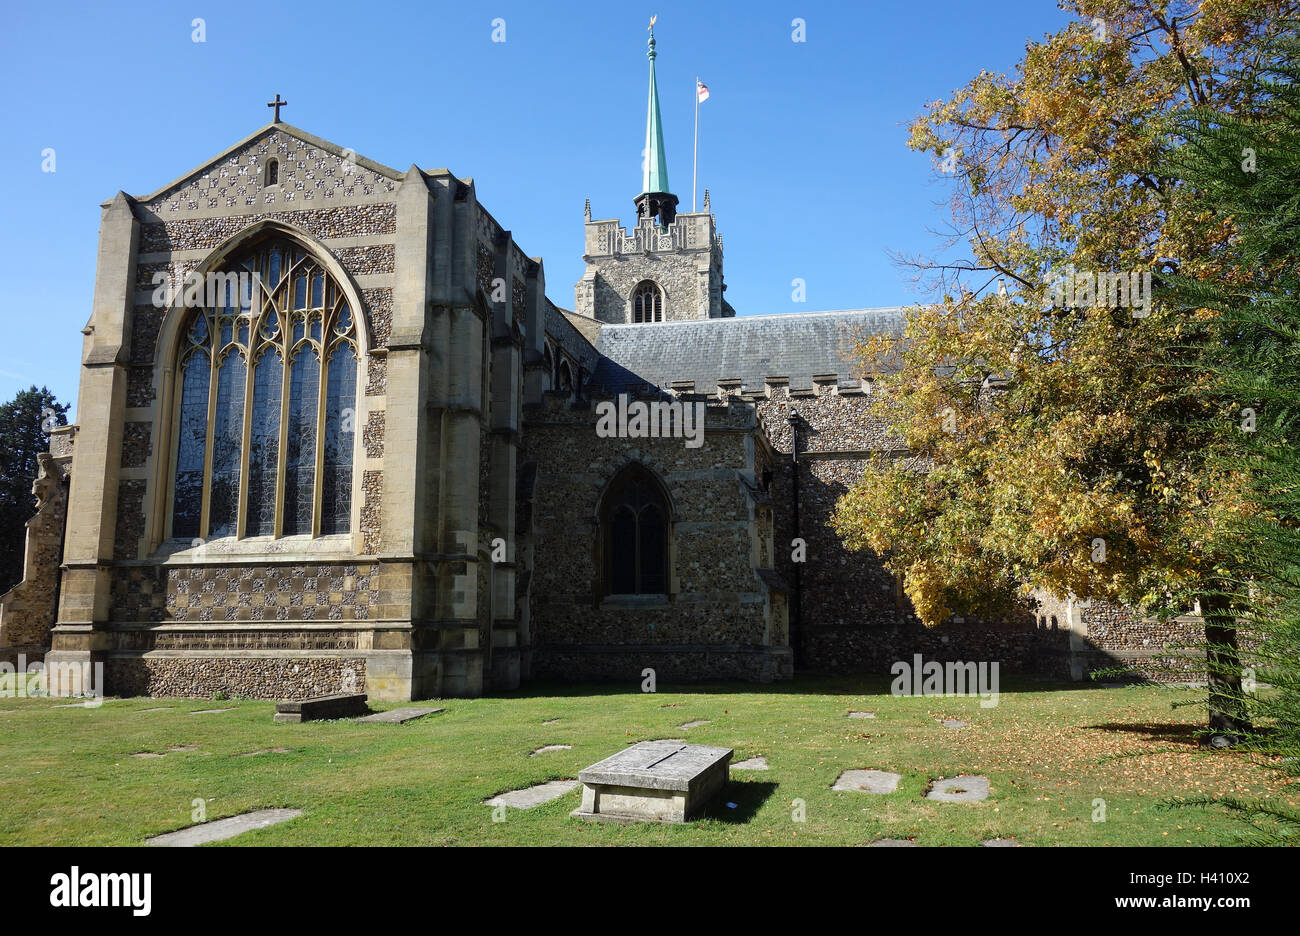 Chelmsford Cathedral on a sunny day - Stock Image